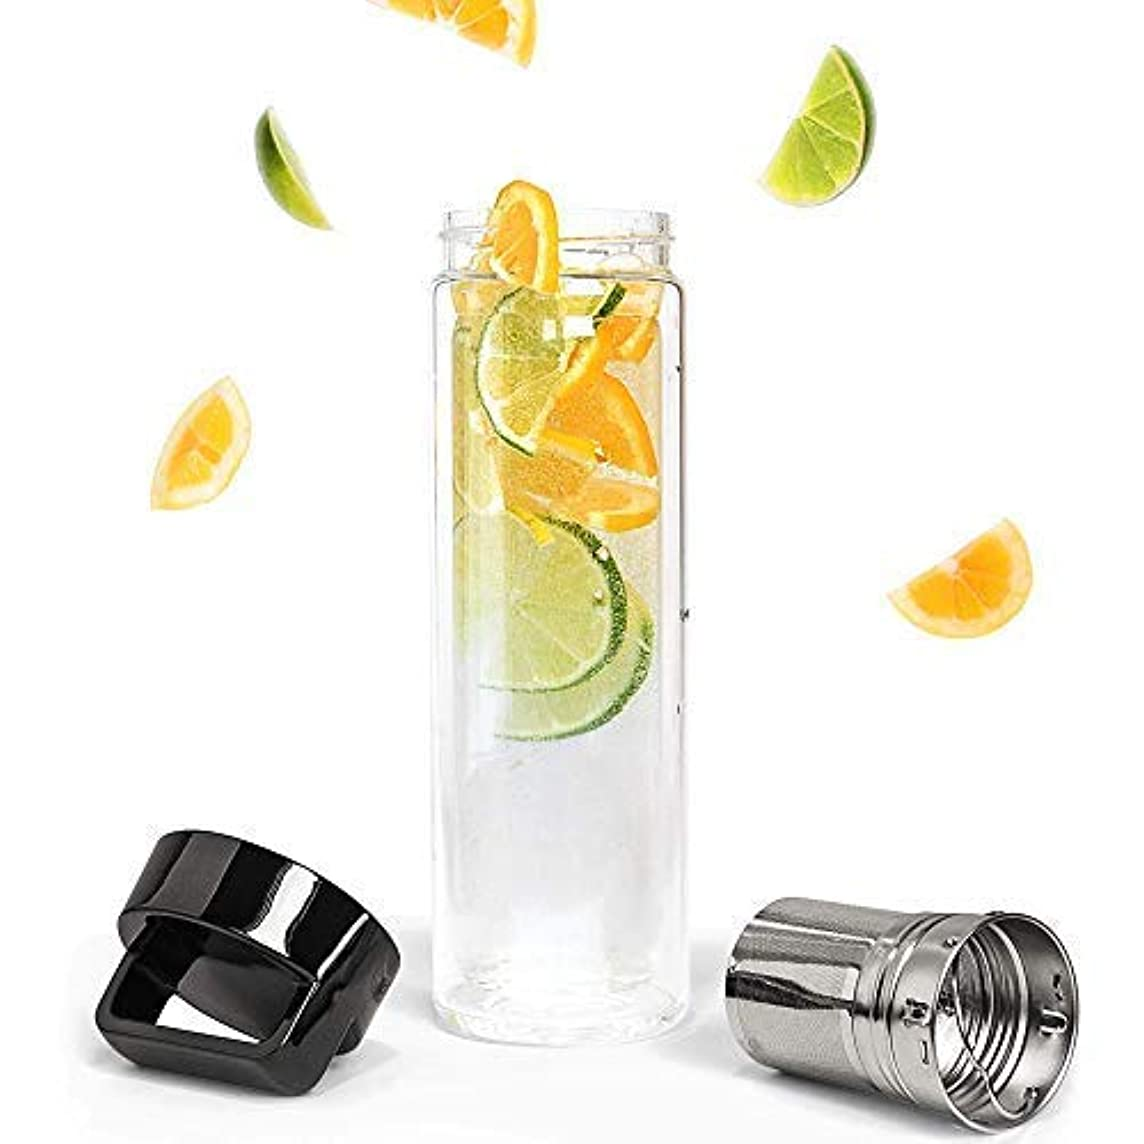 Happy Supply Co Fruit Infuser Water Bottle (16 ox.) Infuse Healthy, Natural Vegetables, Herbs, Loose Leaf Tea   Ultra-Fine Mesh Filtration Tube   Portable Sports, Fitness, Travel Use